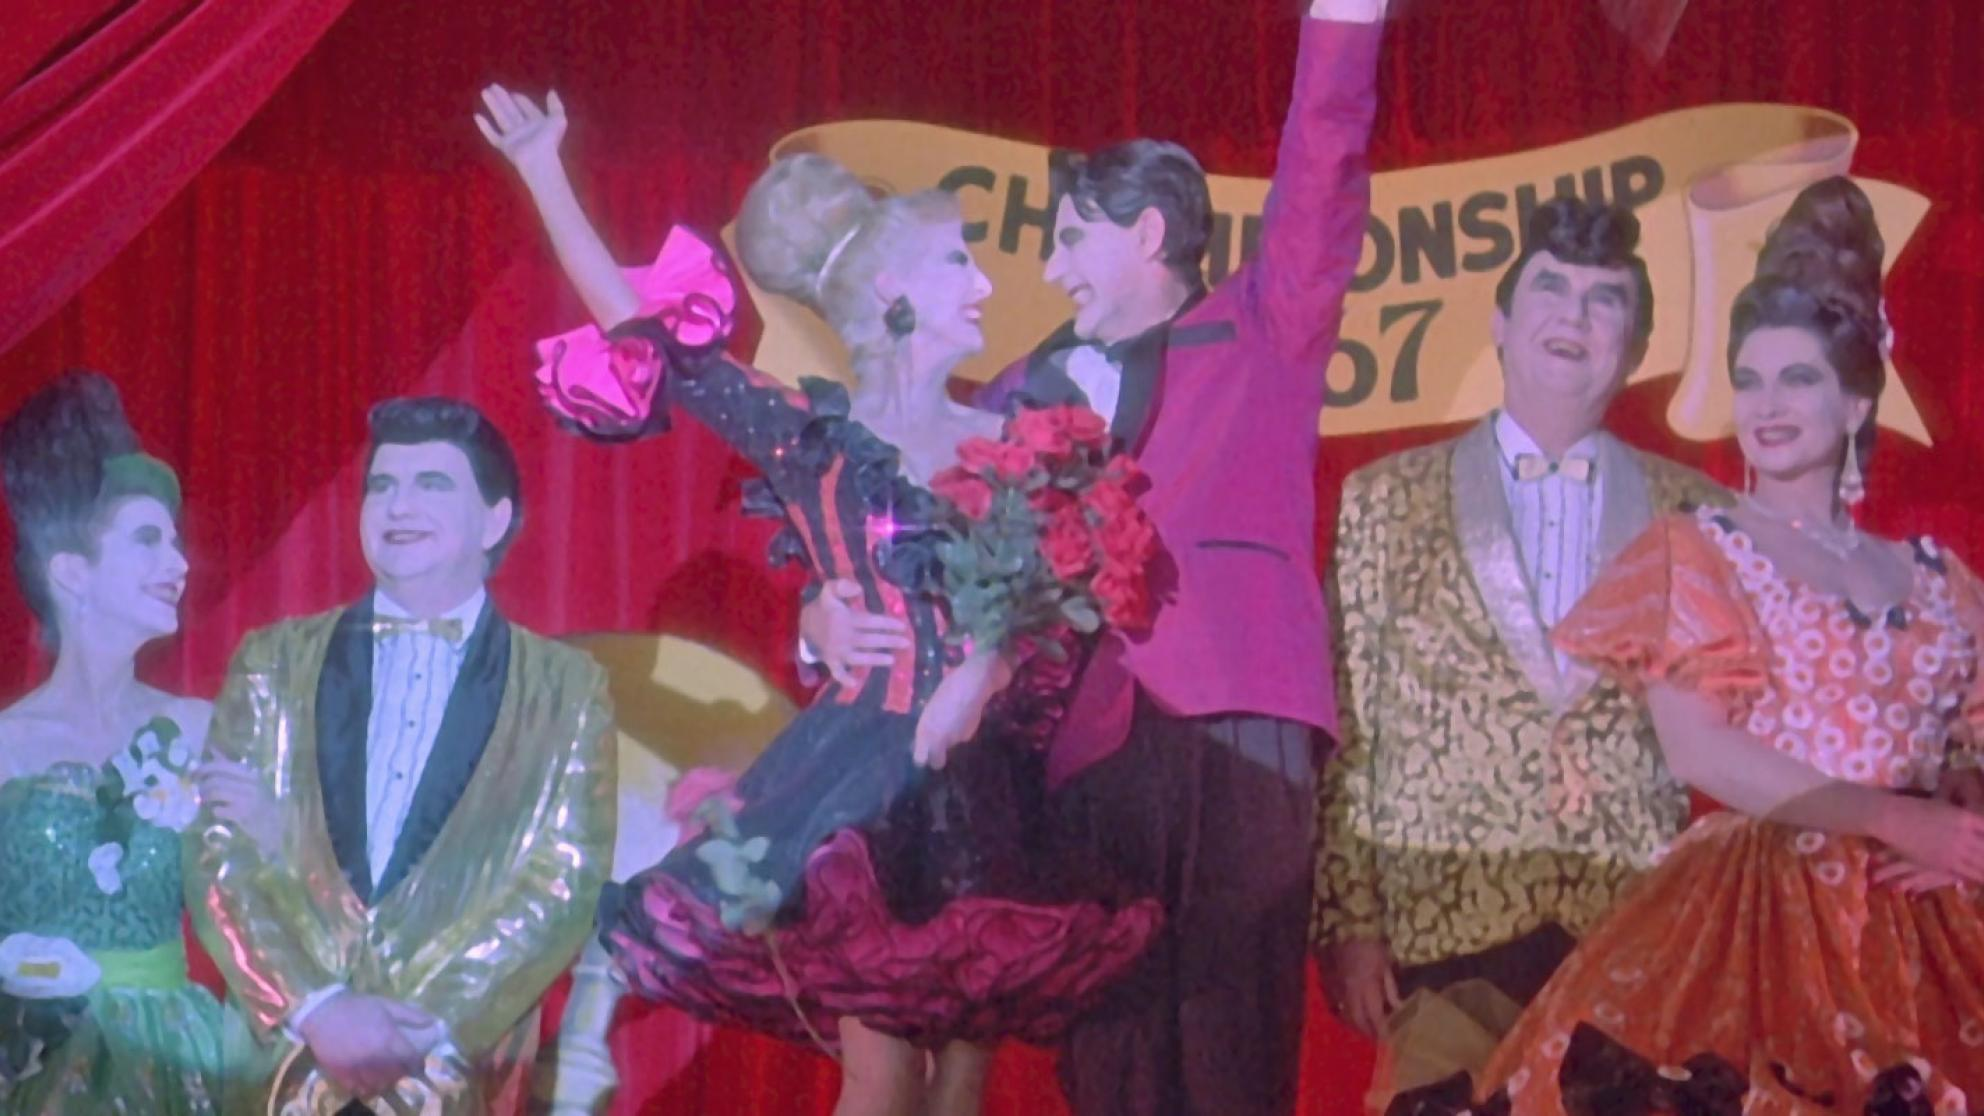 Strictly Ballroom flashback scene three couples dressed overly garishly in ballroom dancing costumes